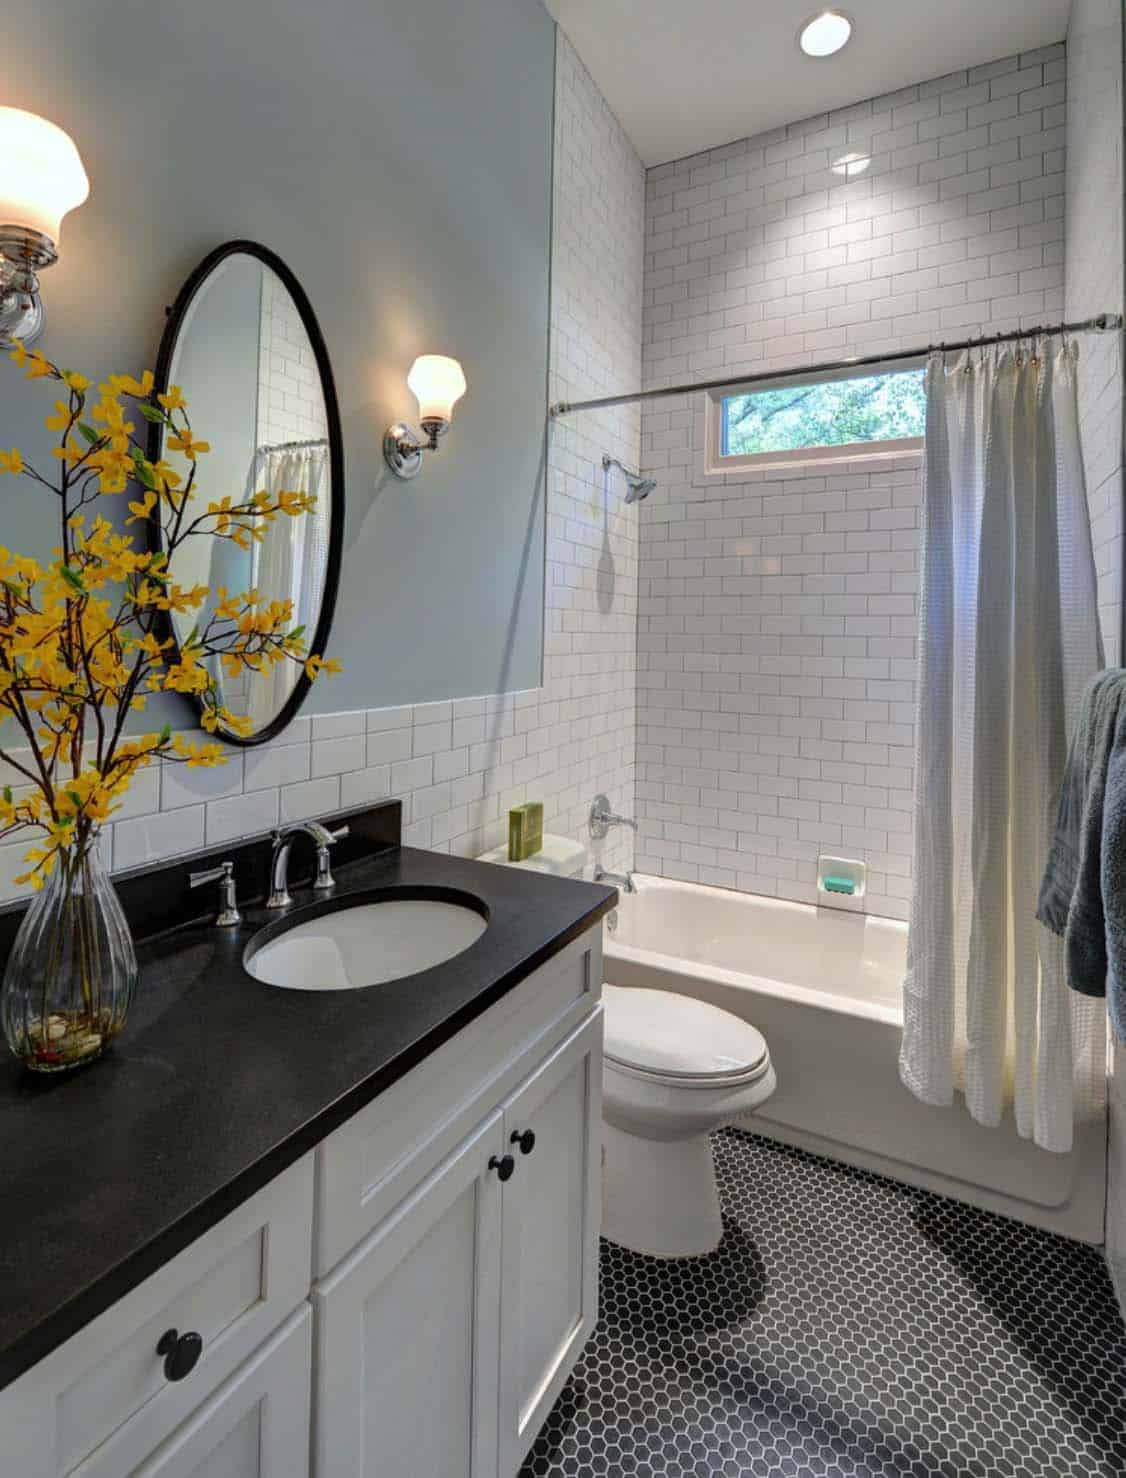 53 Most fabulous traditional style bathroom designs ever on Bathroom Remodel Design Ideas  id=94884